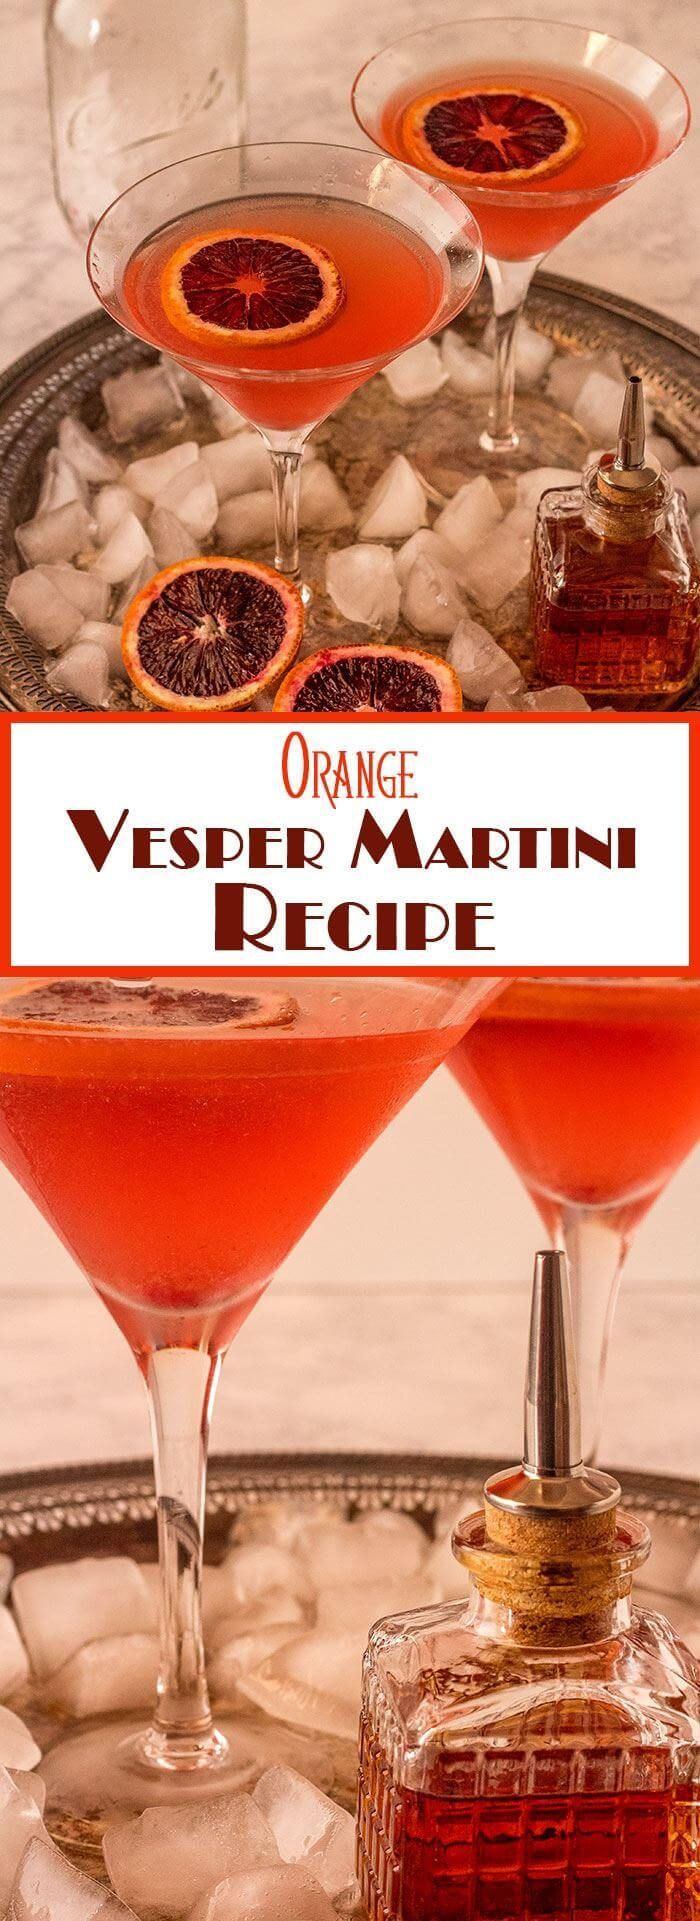 James Bond S Drink Of Choice Was The Vesper Martini This Orange Vesper Martini Recipe Stays Somewhat Tr Vesper Martini Recipe Martini Recipes Vesper Martini